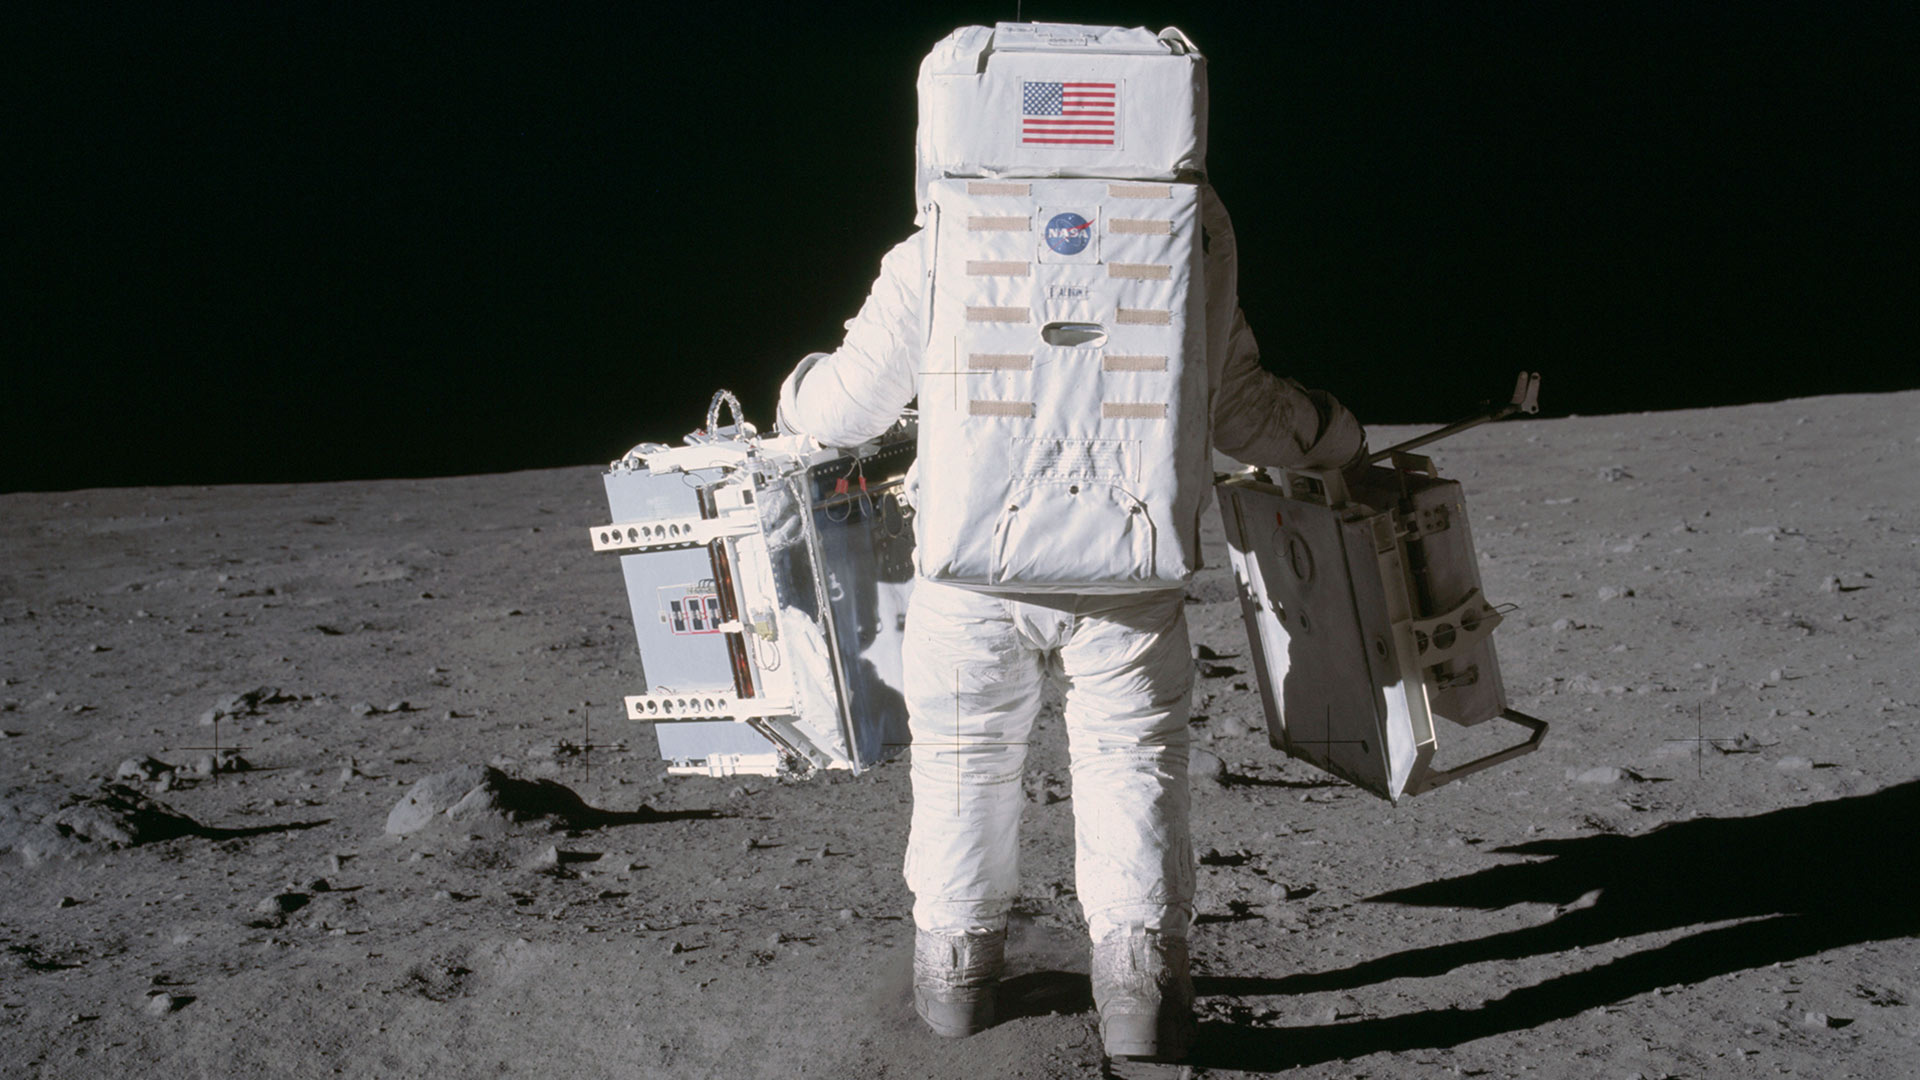 Astronaut Buzz Aldrin carries two pieces of science equipment during the Apollo 11 extravehicular activity in July 1969. In his right hand is a mirror array designed by UMD physicists Doug Currie and the late Carroll Alley, along with a national team. (Photo by Neil Armstrong/NASA)